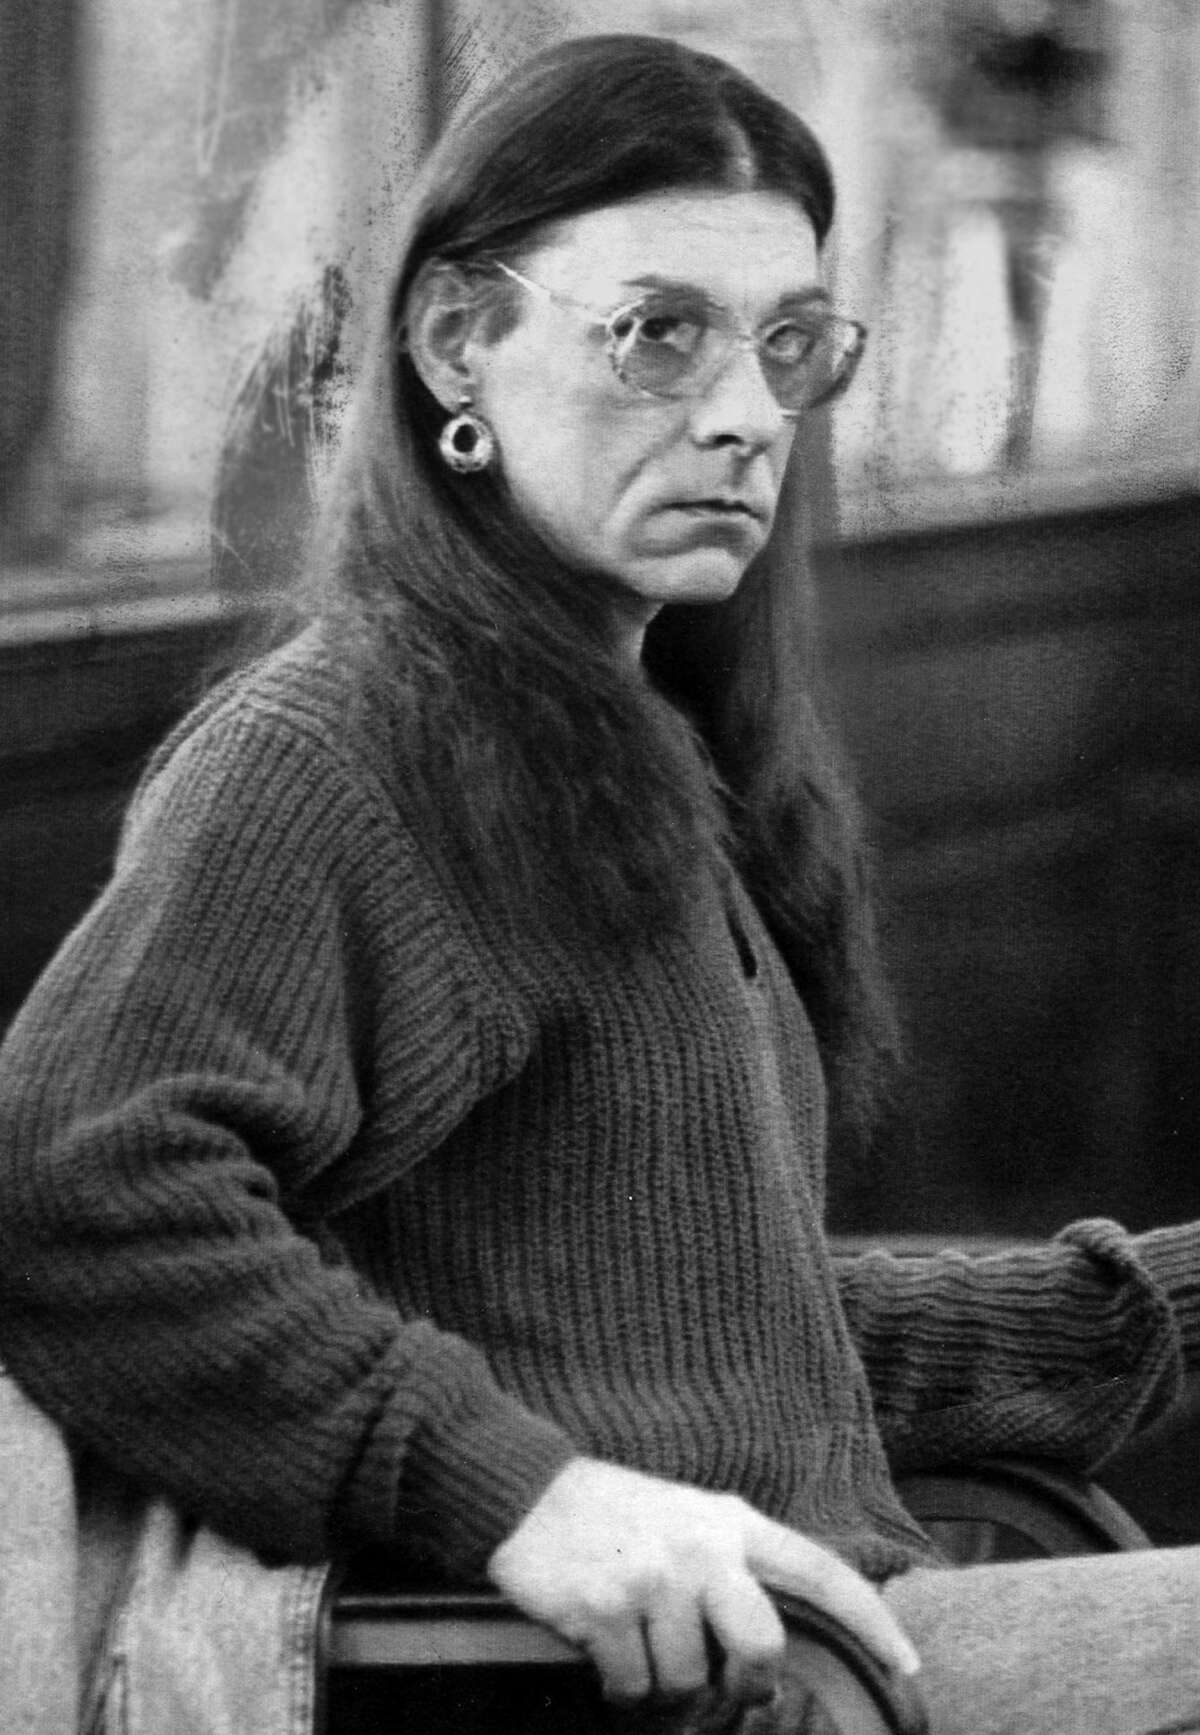 Robert Kosilek, who is shown in 1993 and is now known as Michelle Kosilek, lives as a woman in a Massachusetts prison.